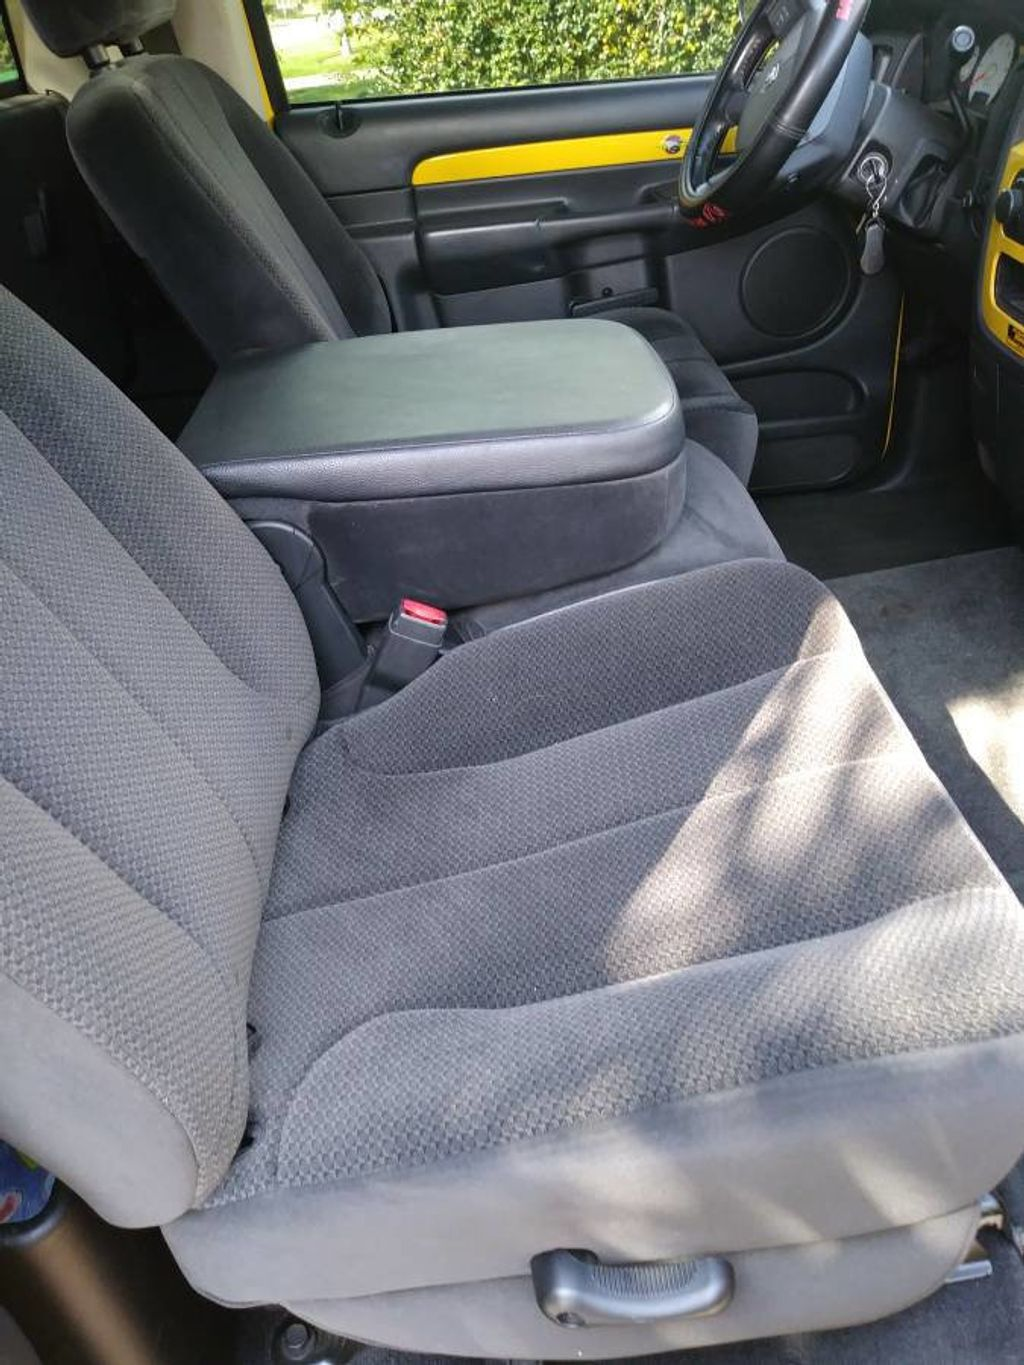 2005 Dodge Ram 1500 Rumble Bee Limited Edition For Sale - 17386933 - 12